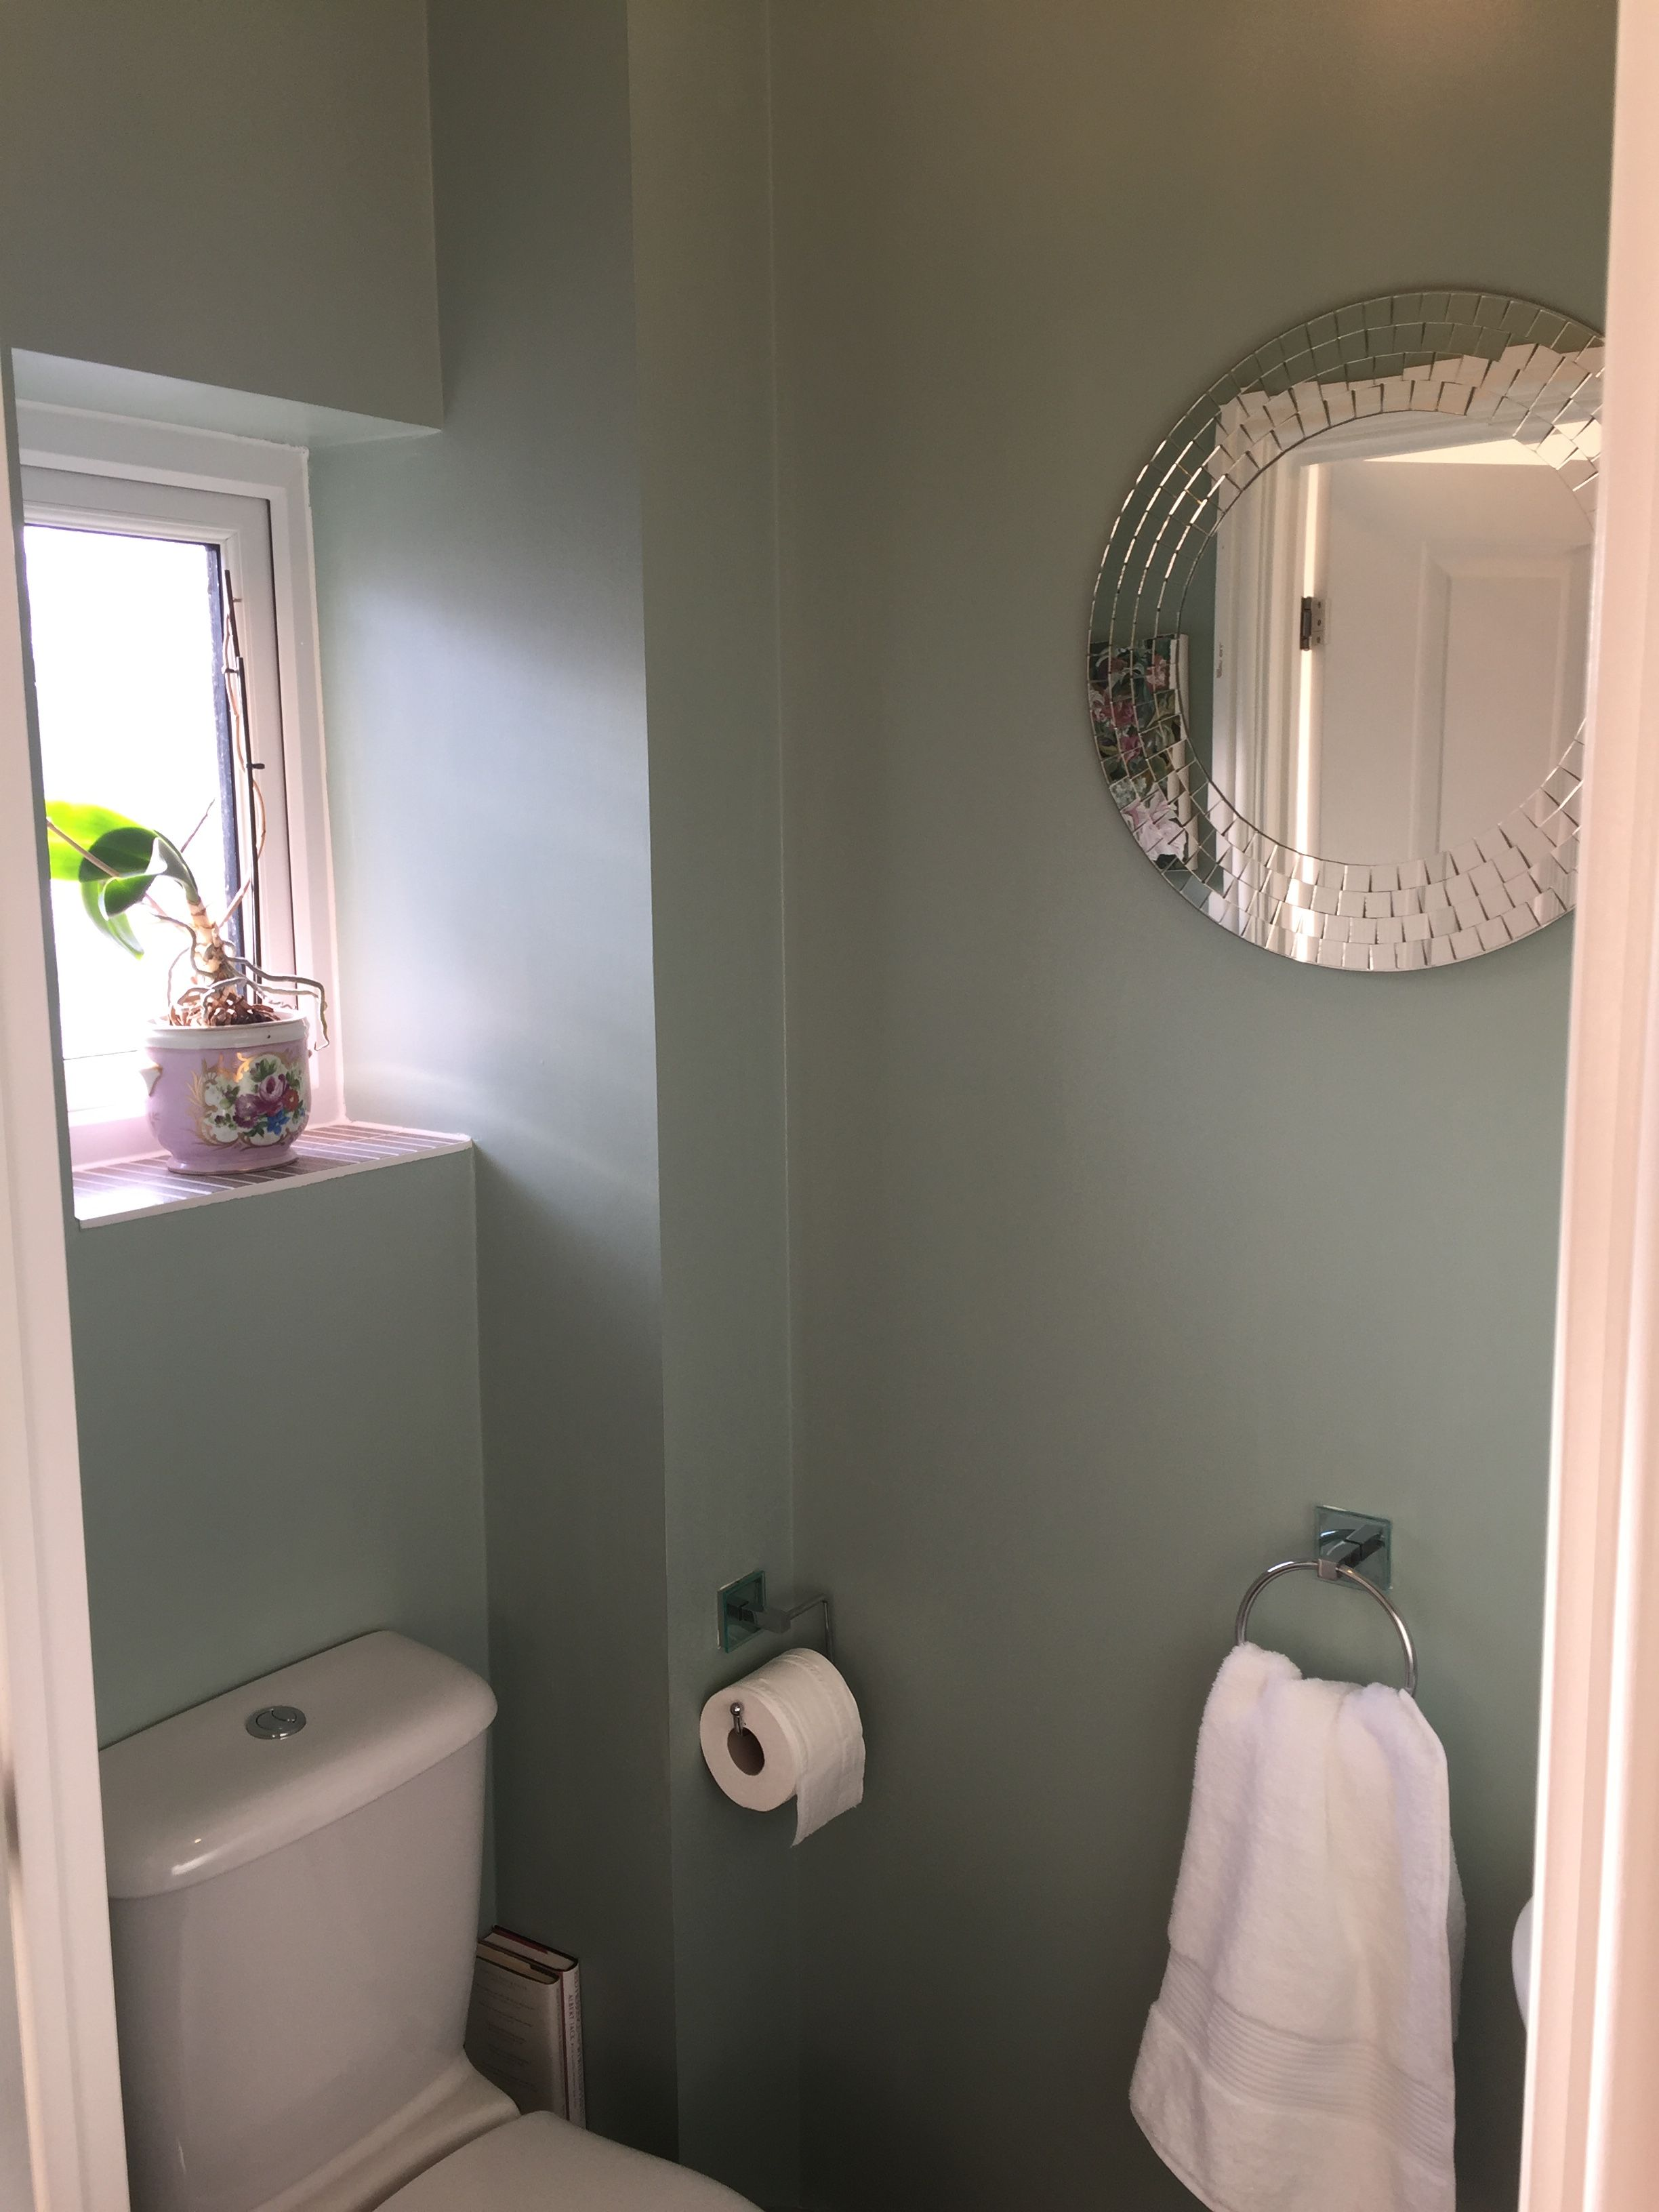 Farrow And Ball Blue Green Cloakroom Bathroom Toilet Bold Colour Duck Egg Green Bathroom Decor Bathroom Design Decor Green Bathroom